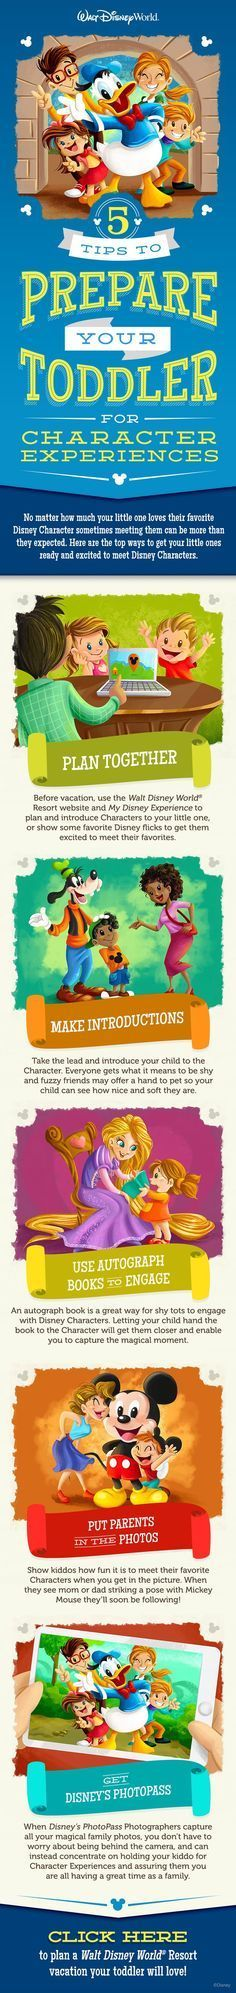 5 Tips to Prepare your Toddler for Character Experiences at Walt Disney World! #vacation #DisneyKids